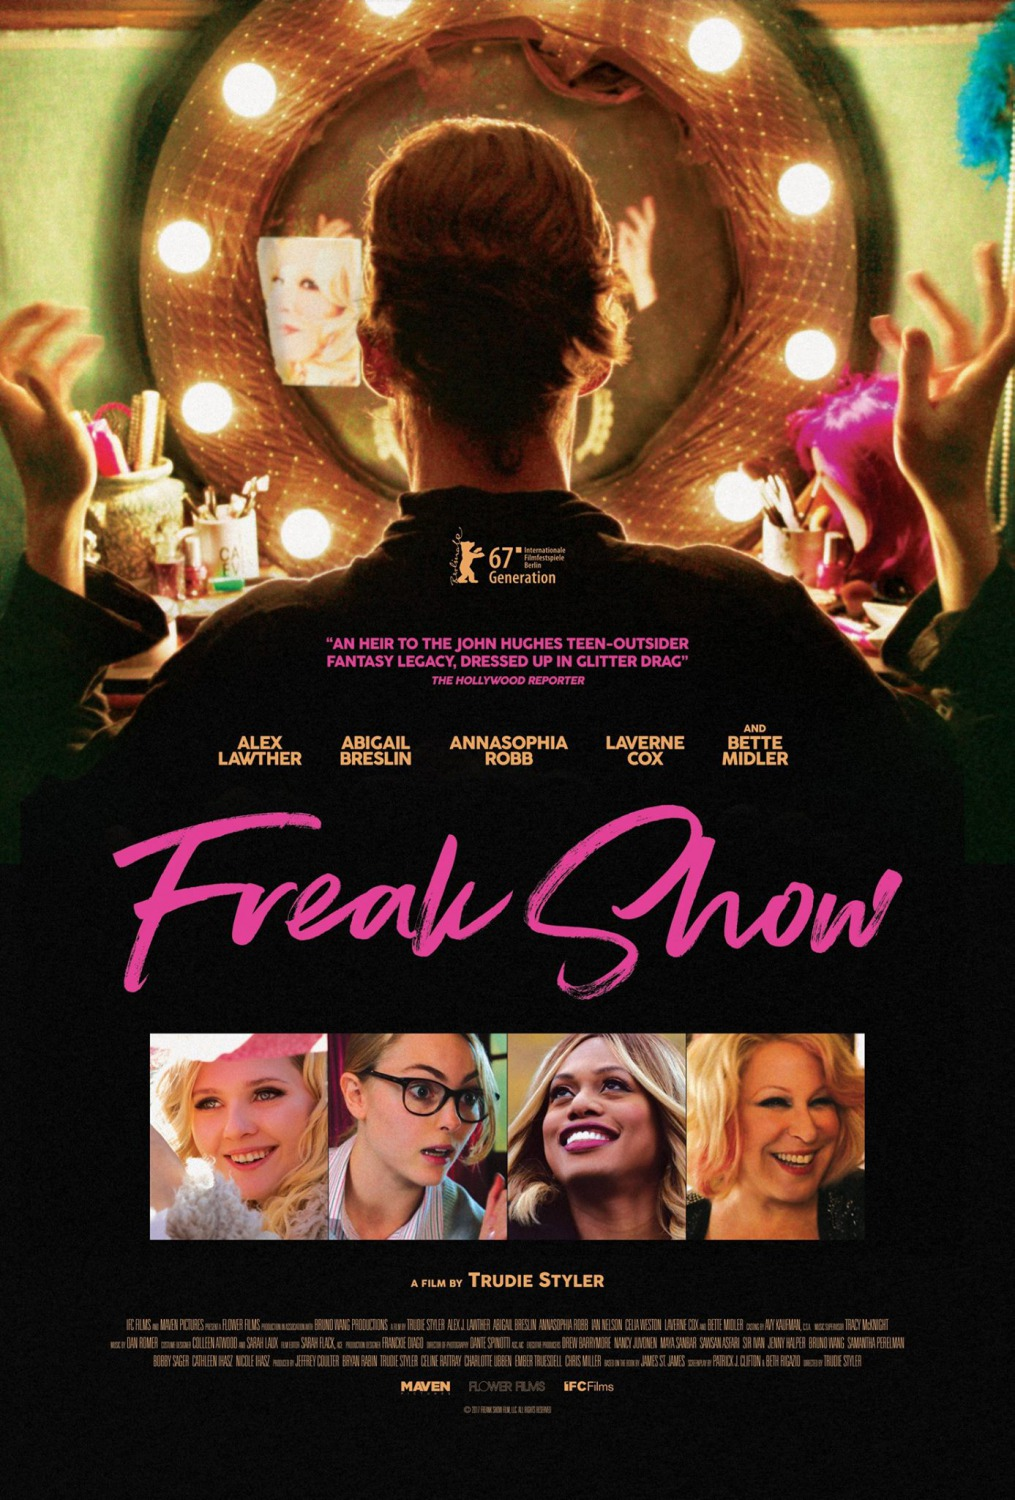 17 freakshow top 25 movie posters of 2018